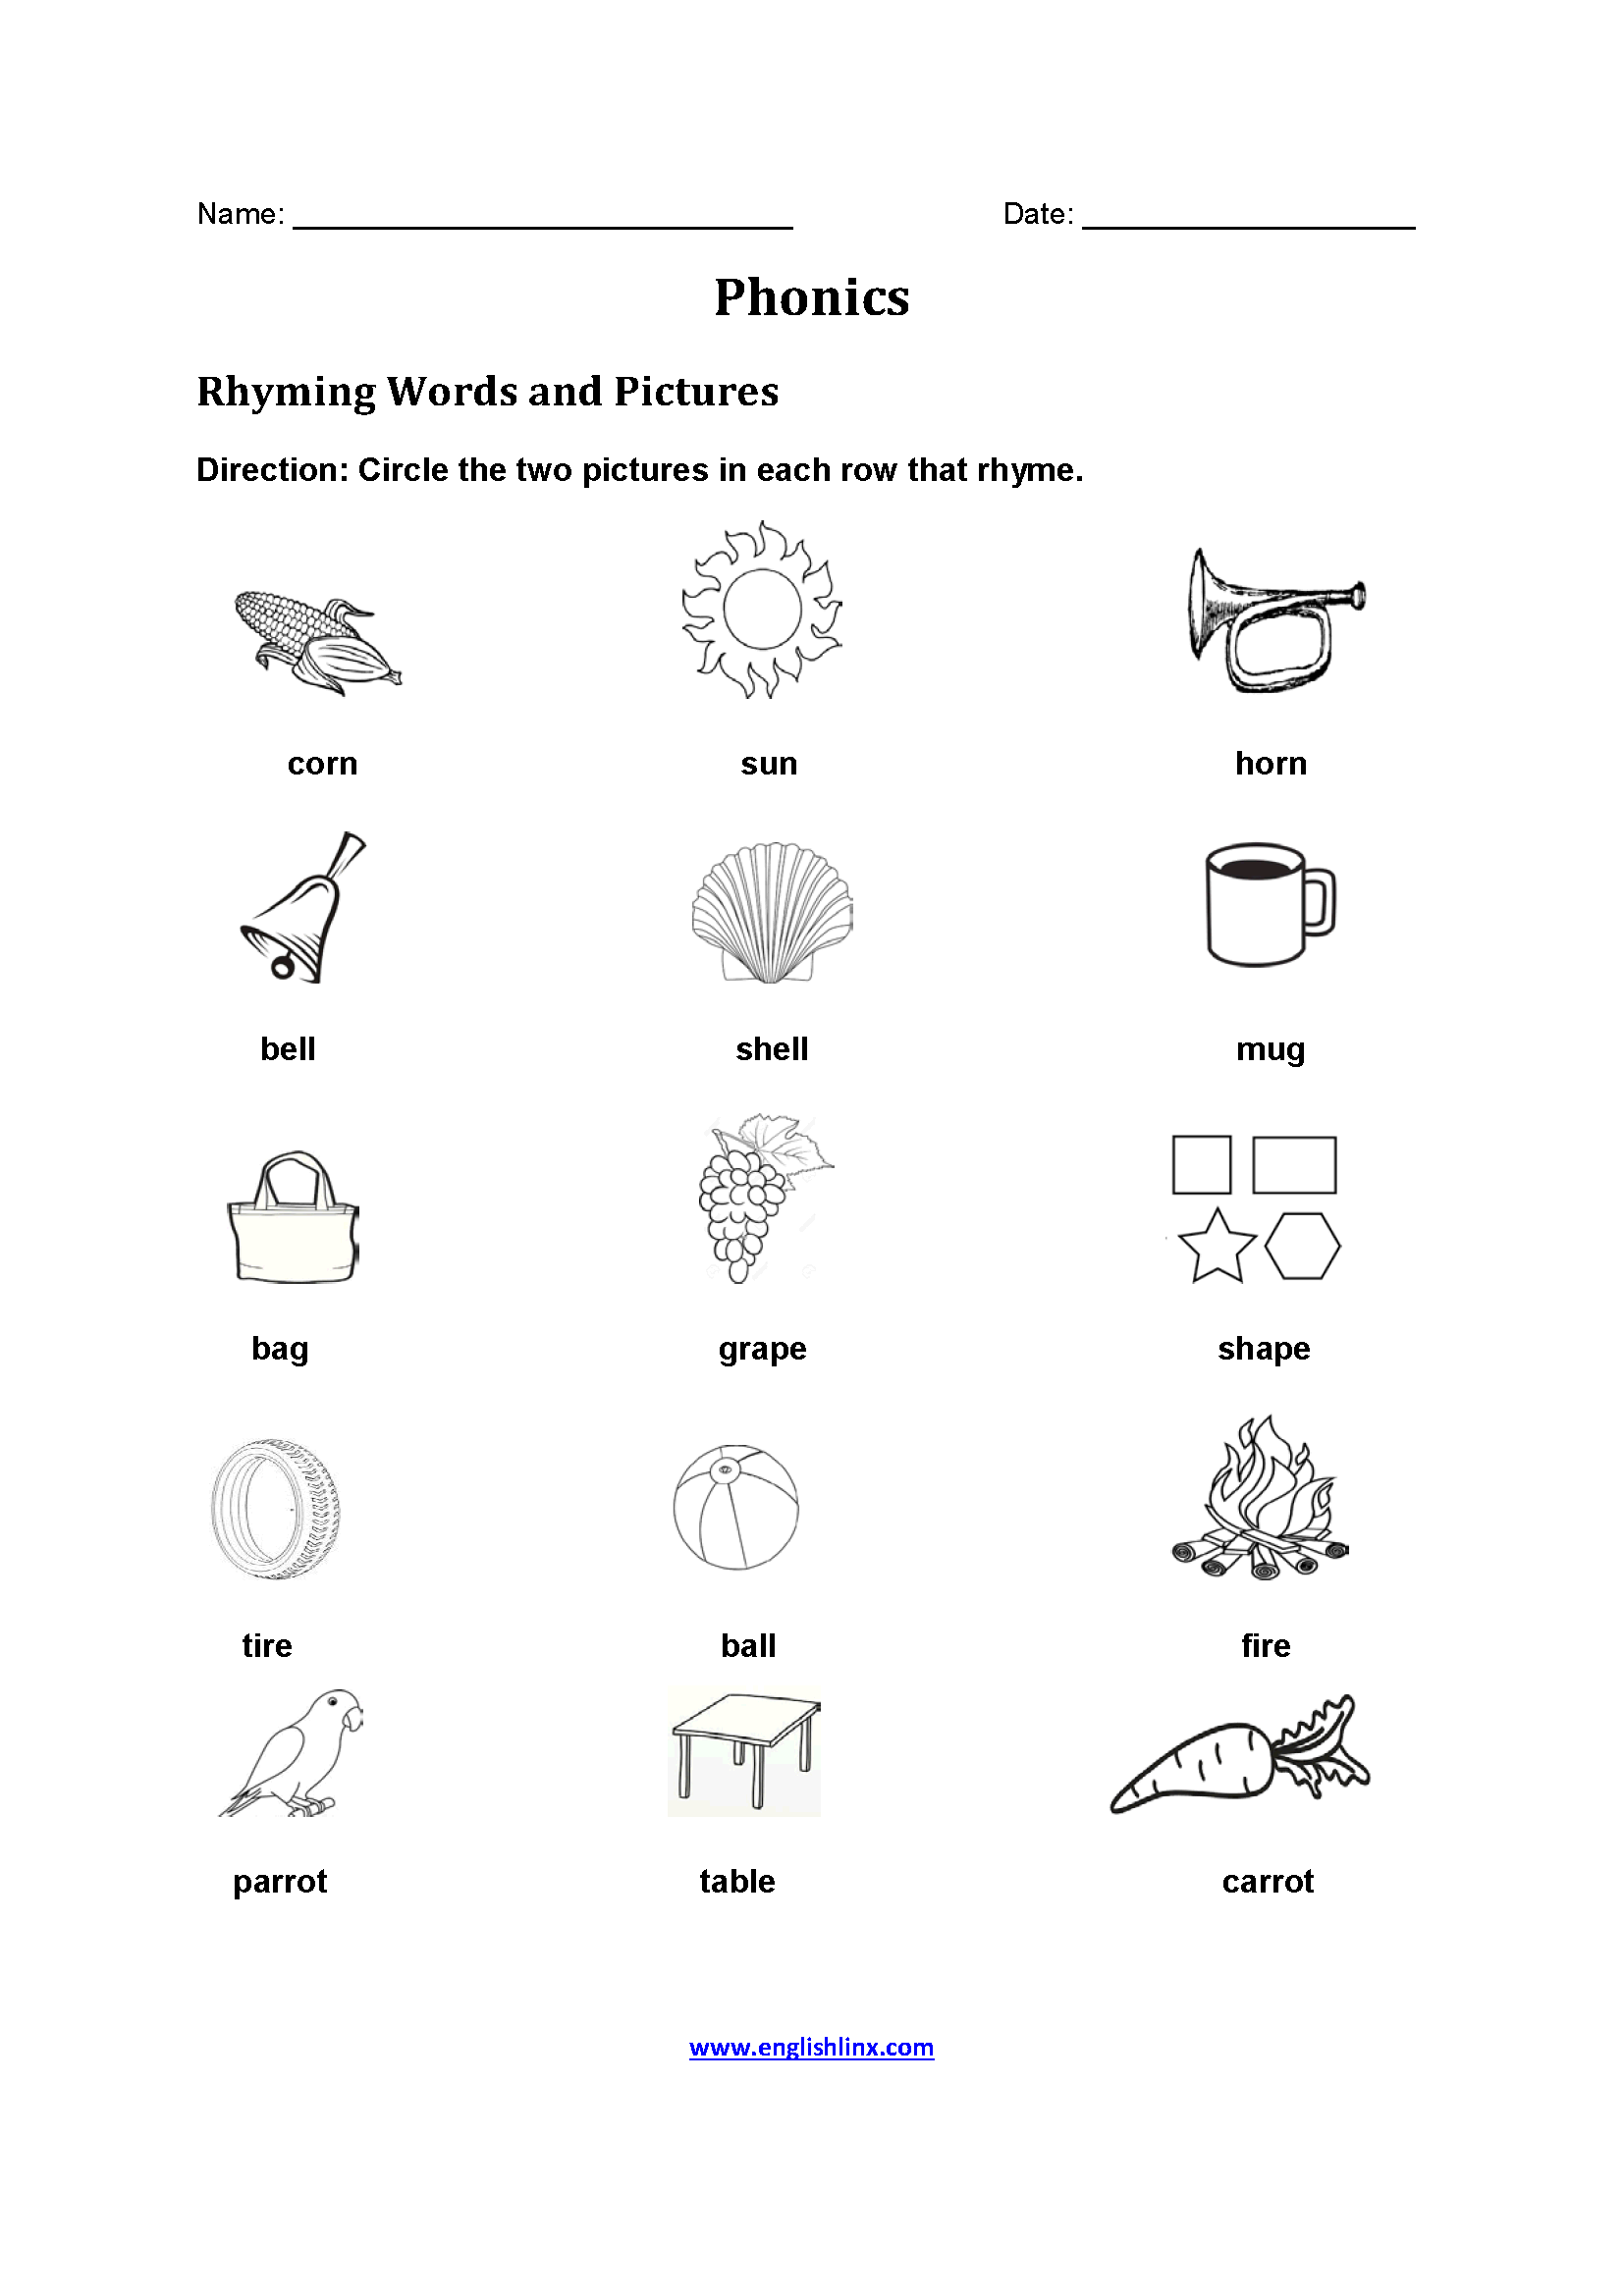 Rhyming Words Worksheet 5th Grade